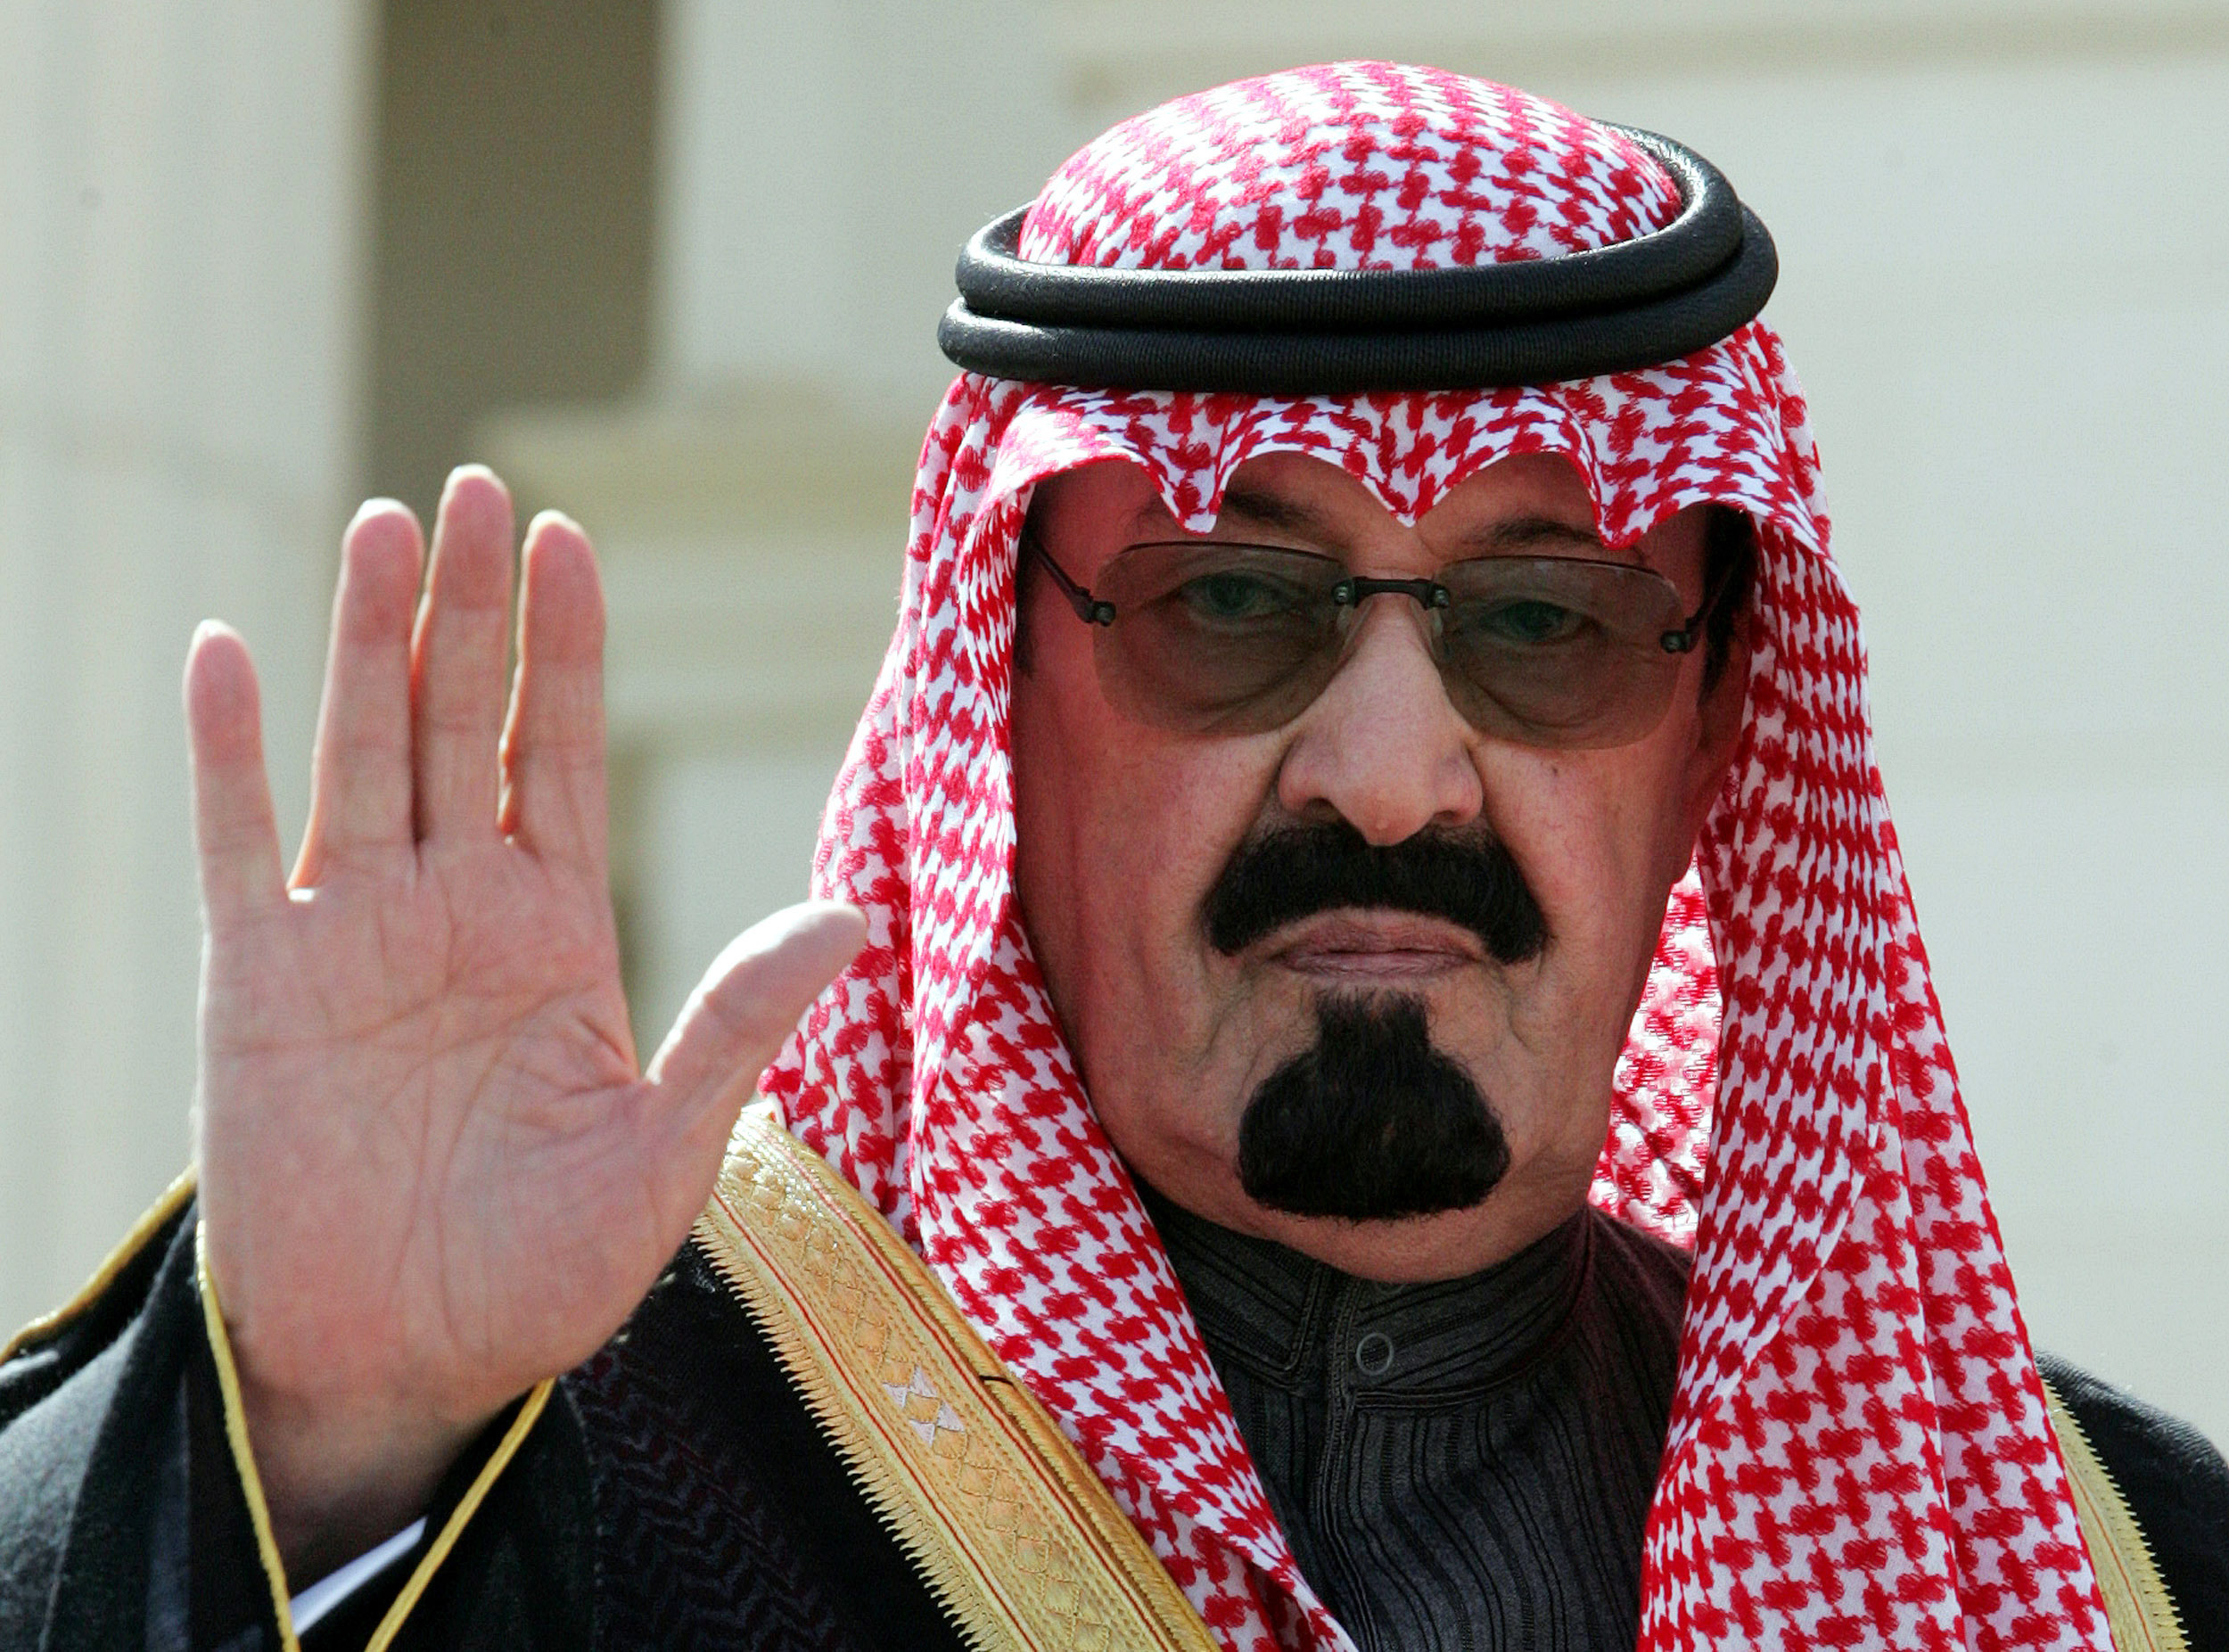 King Abdullah waves as he arrives to open a conference in Riyadh on Feb. 5, 2005